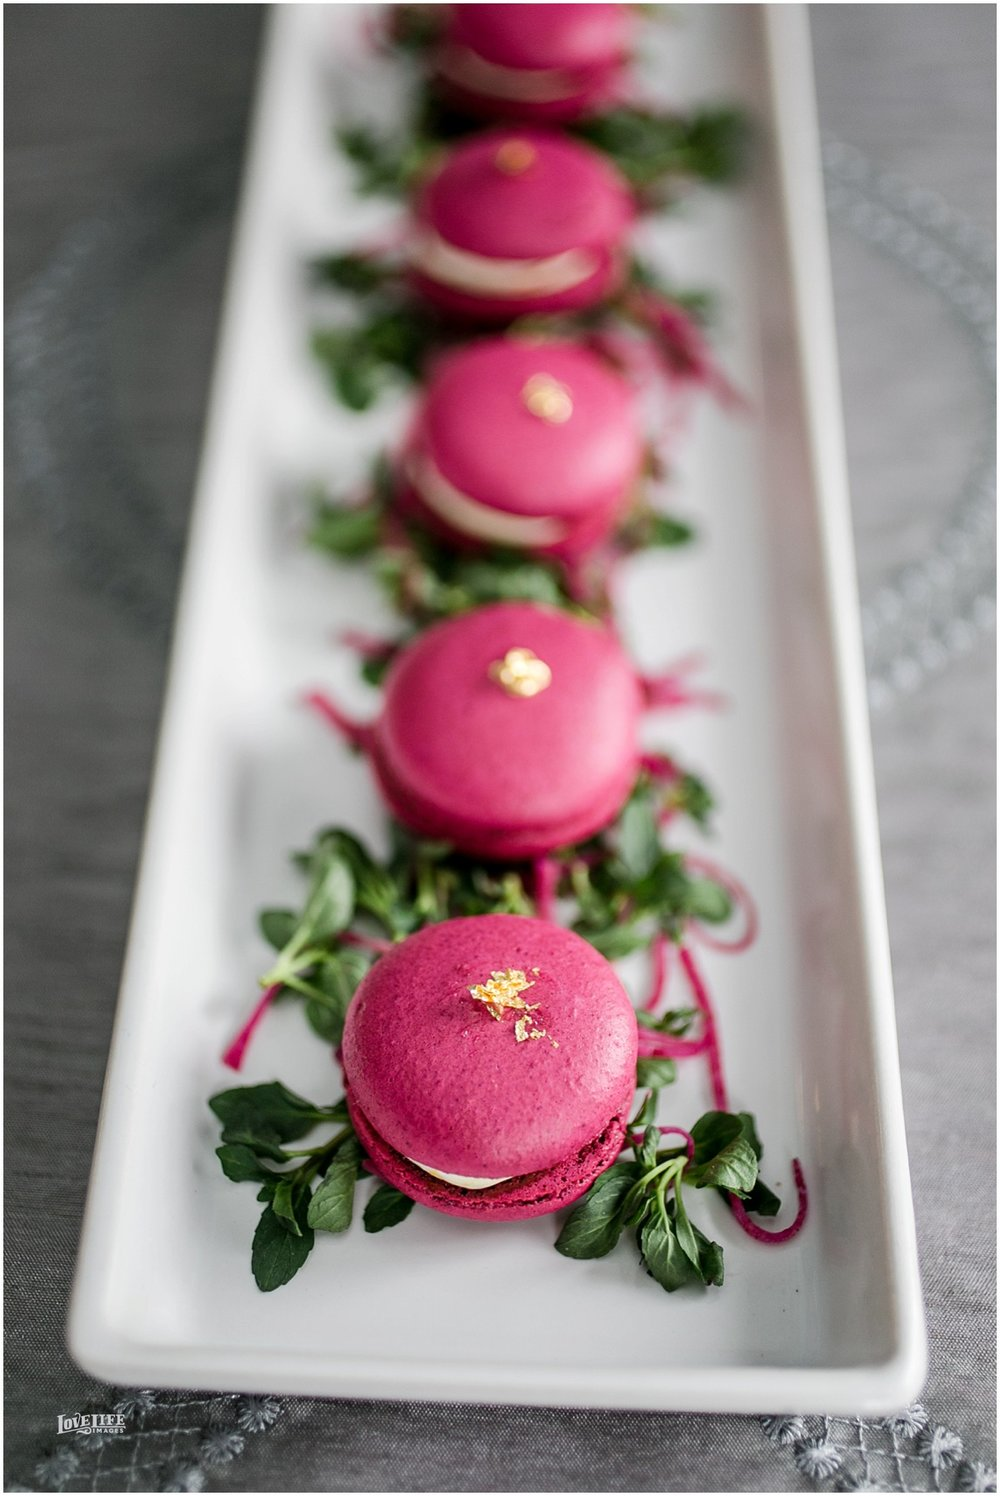 Mini Savory Red Beet and Chèvre Macaron  Goat Cheese|Gold Leaf Fleck